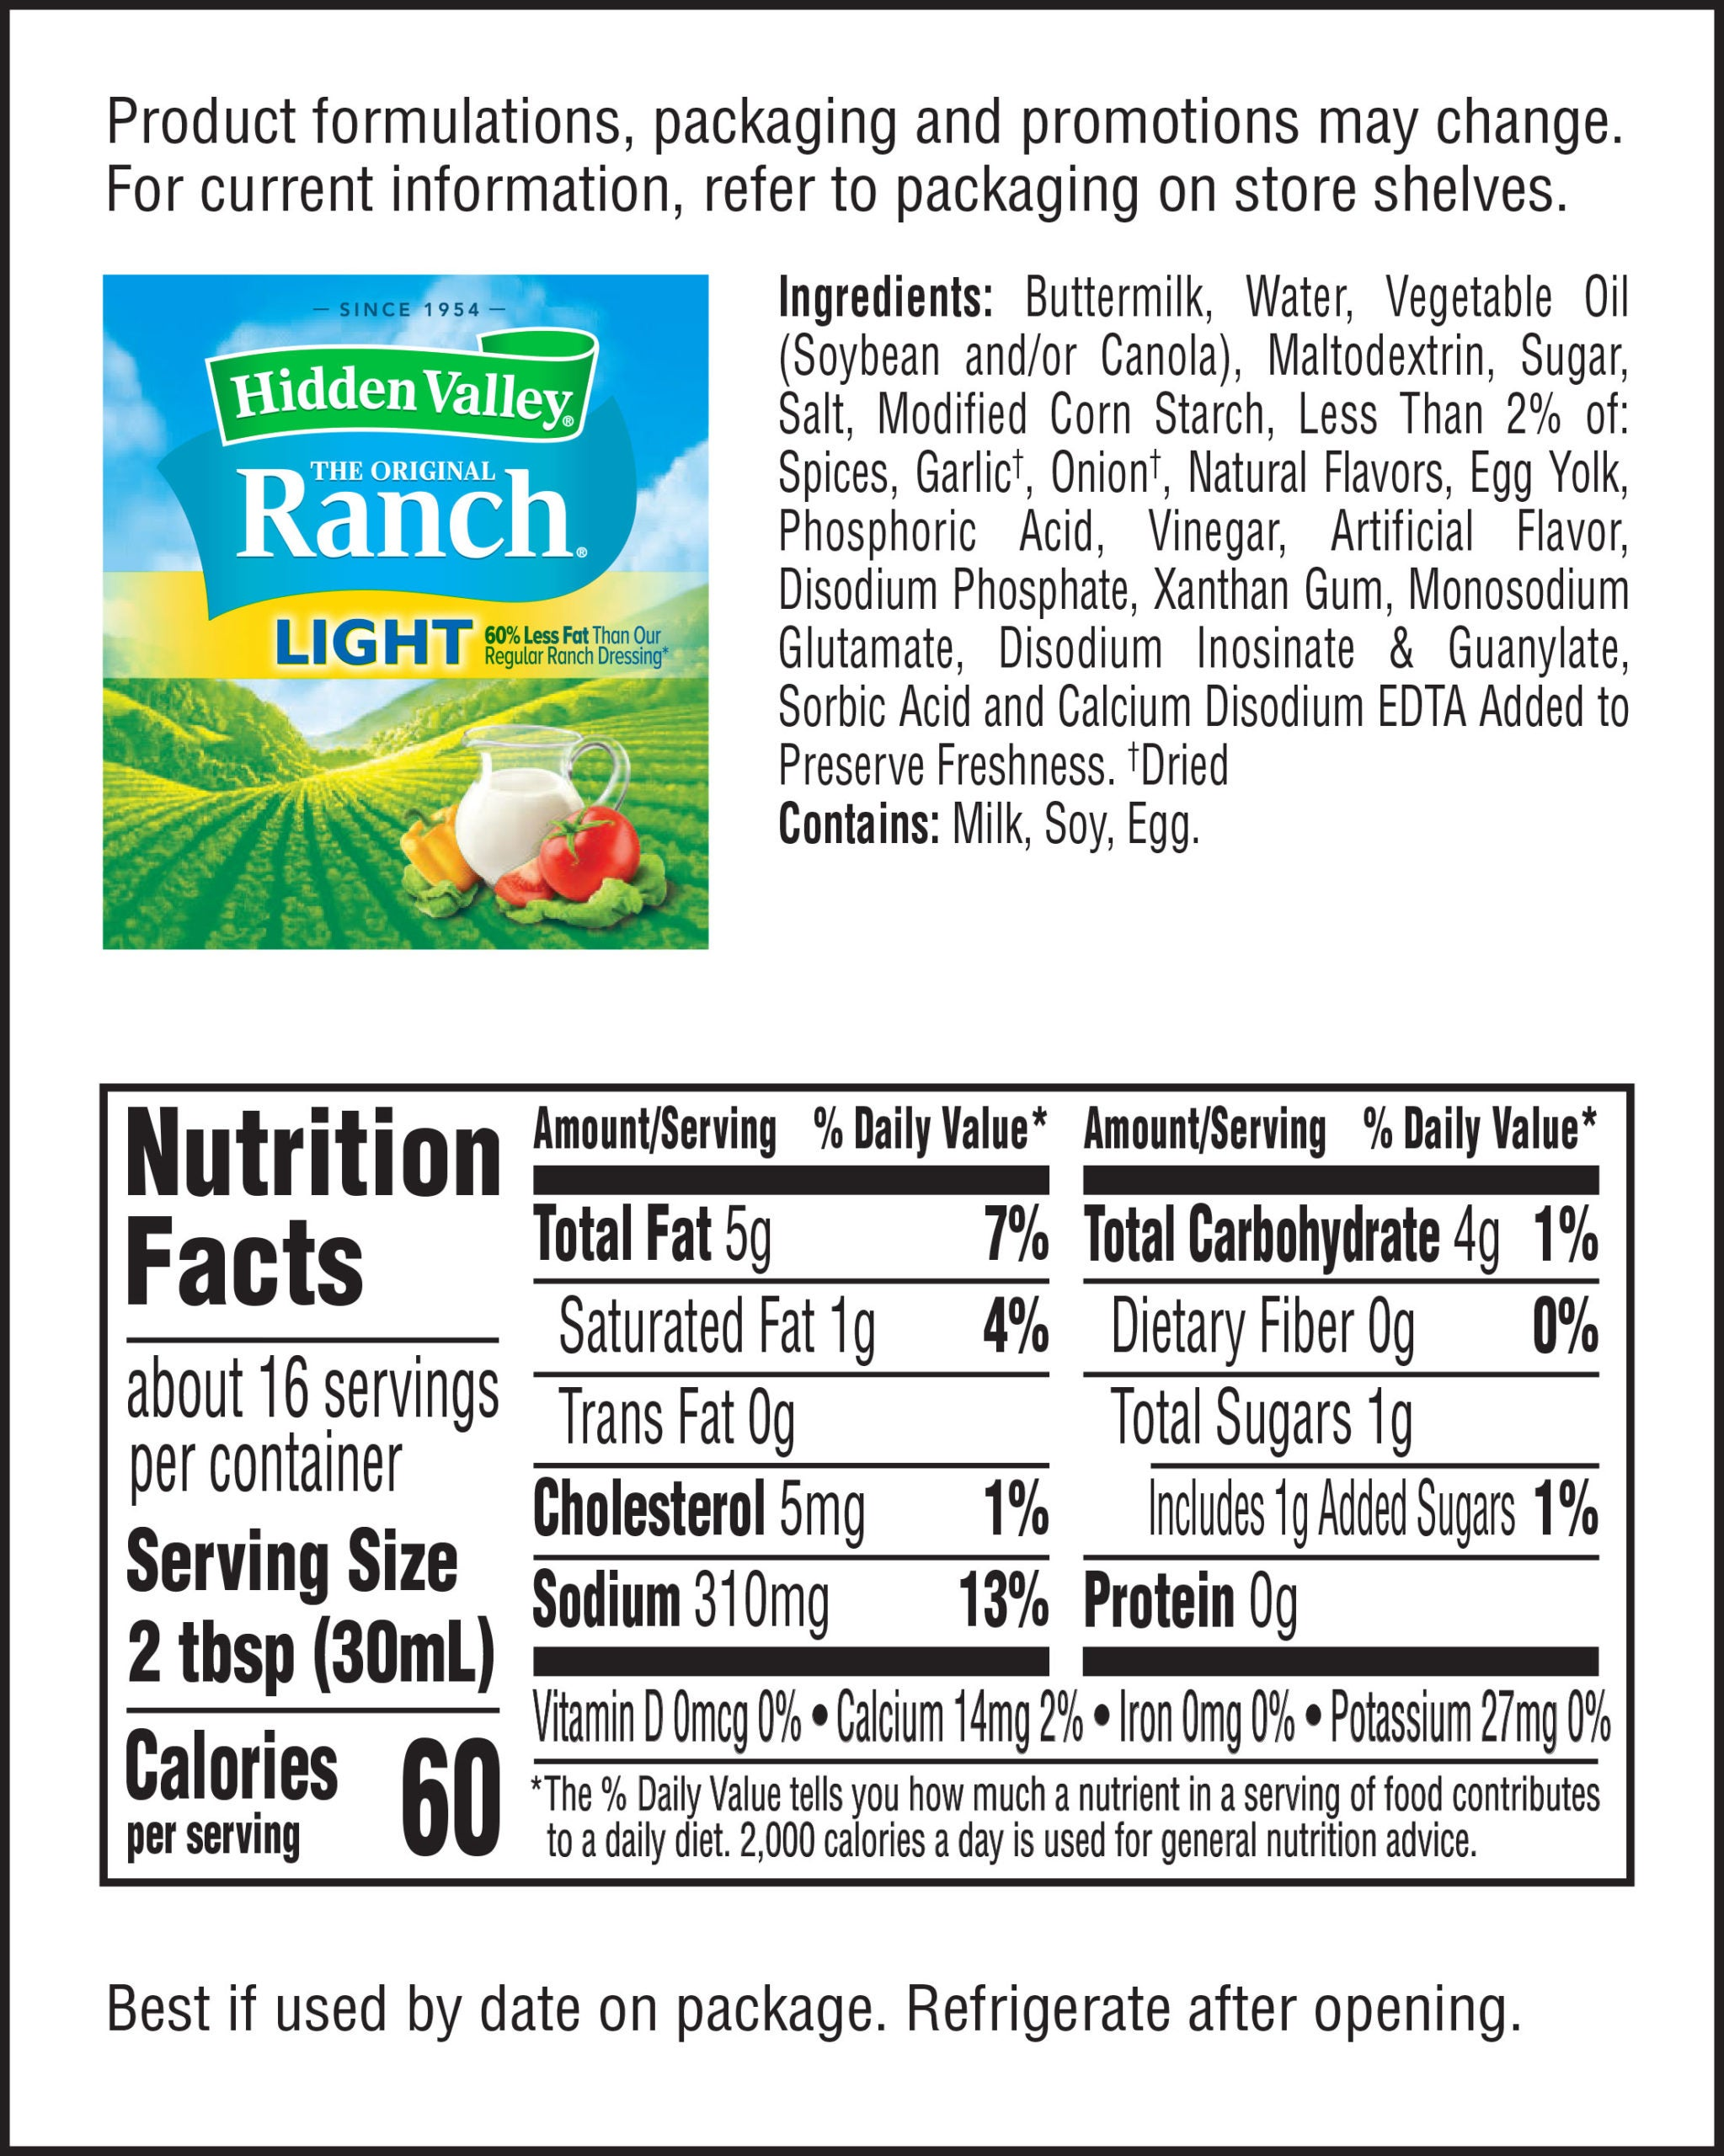 The Original Ranch® Light nutritional facts